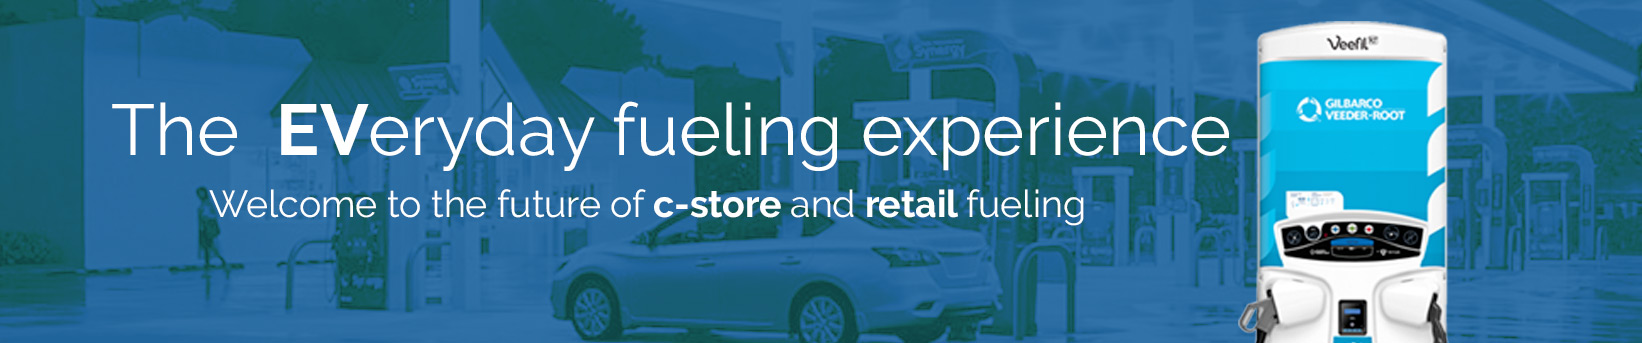 The EVeryday fueling experience. Welcome to the future of c-store and retail fueling